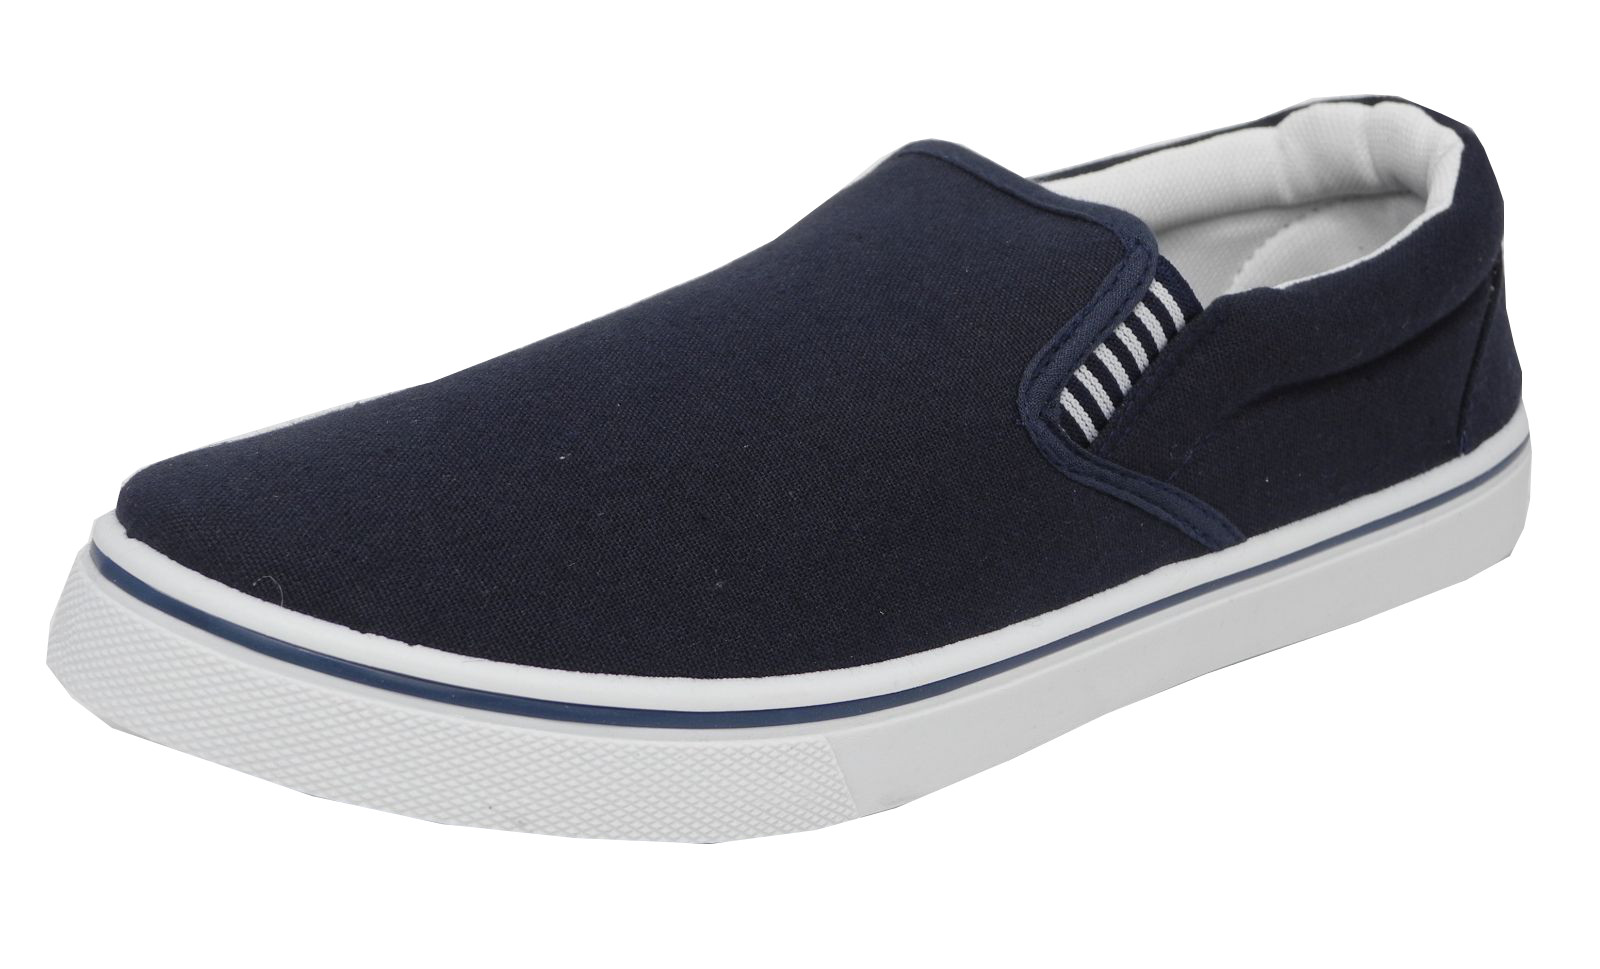 Business plan canvas deck shoes